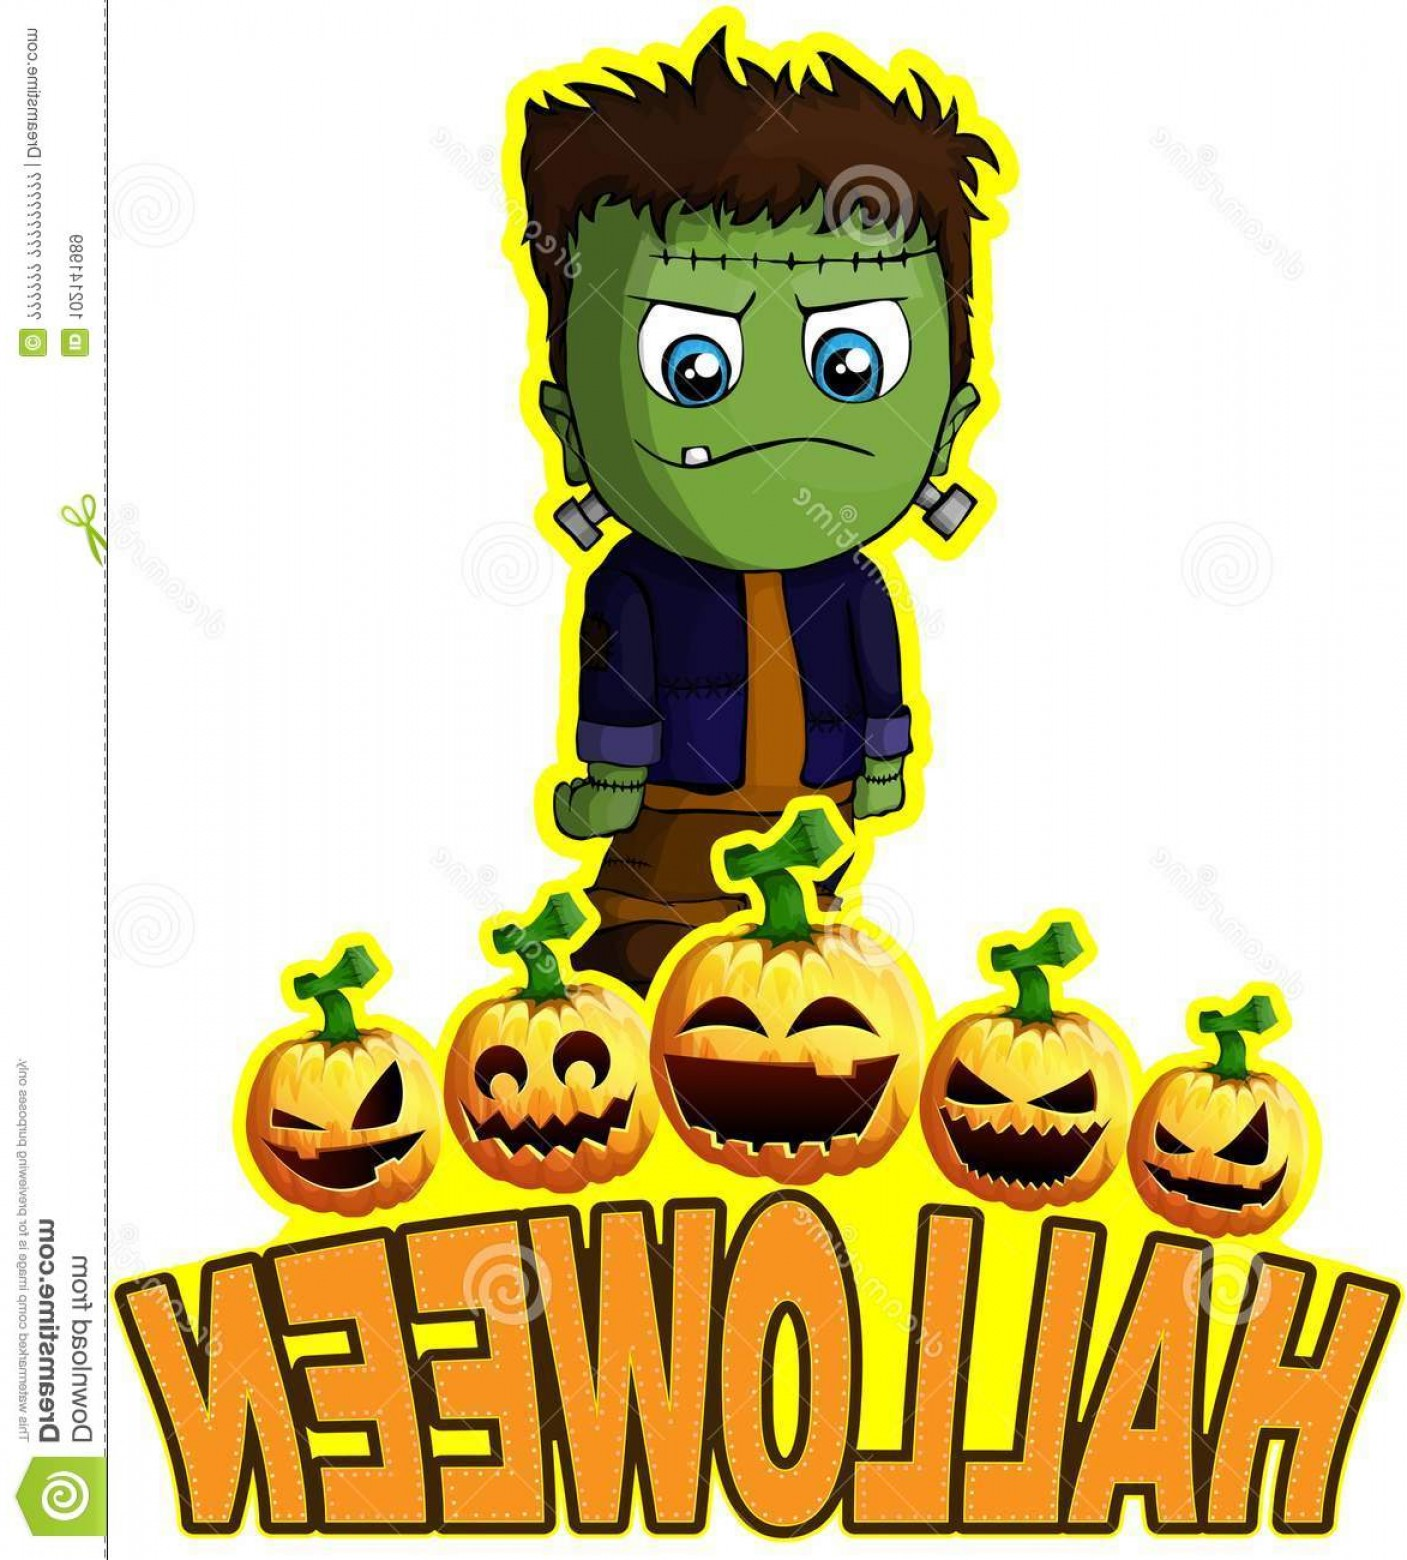 Frankenstein Vector Poster: File Layers Editable All Objects Drawn Separately Halloween Poster Frankenstein Image